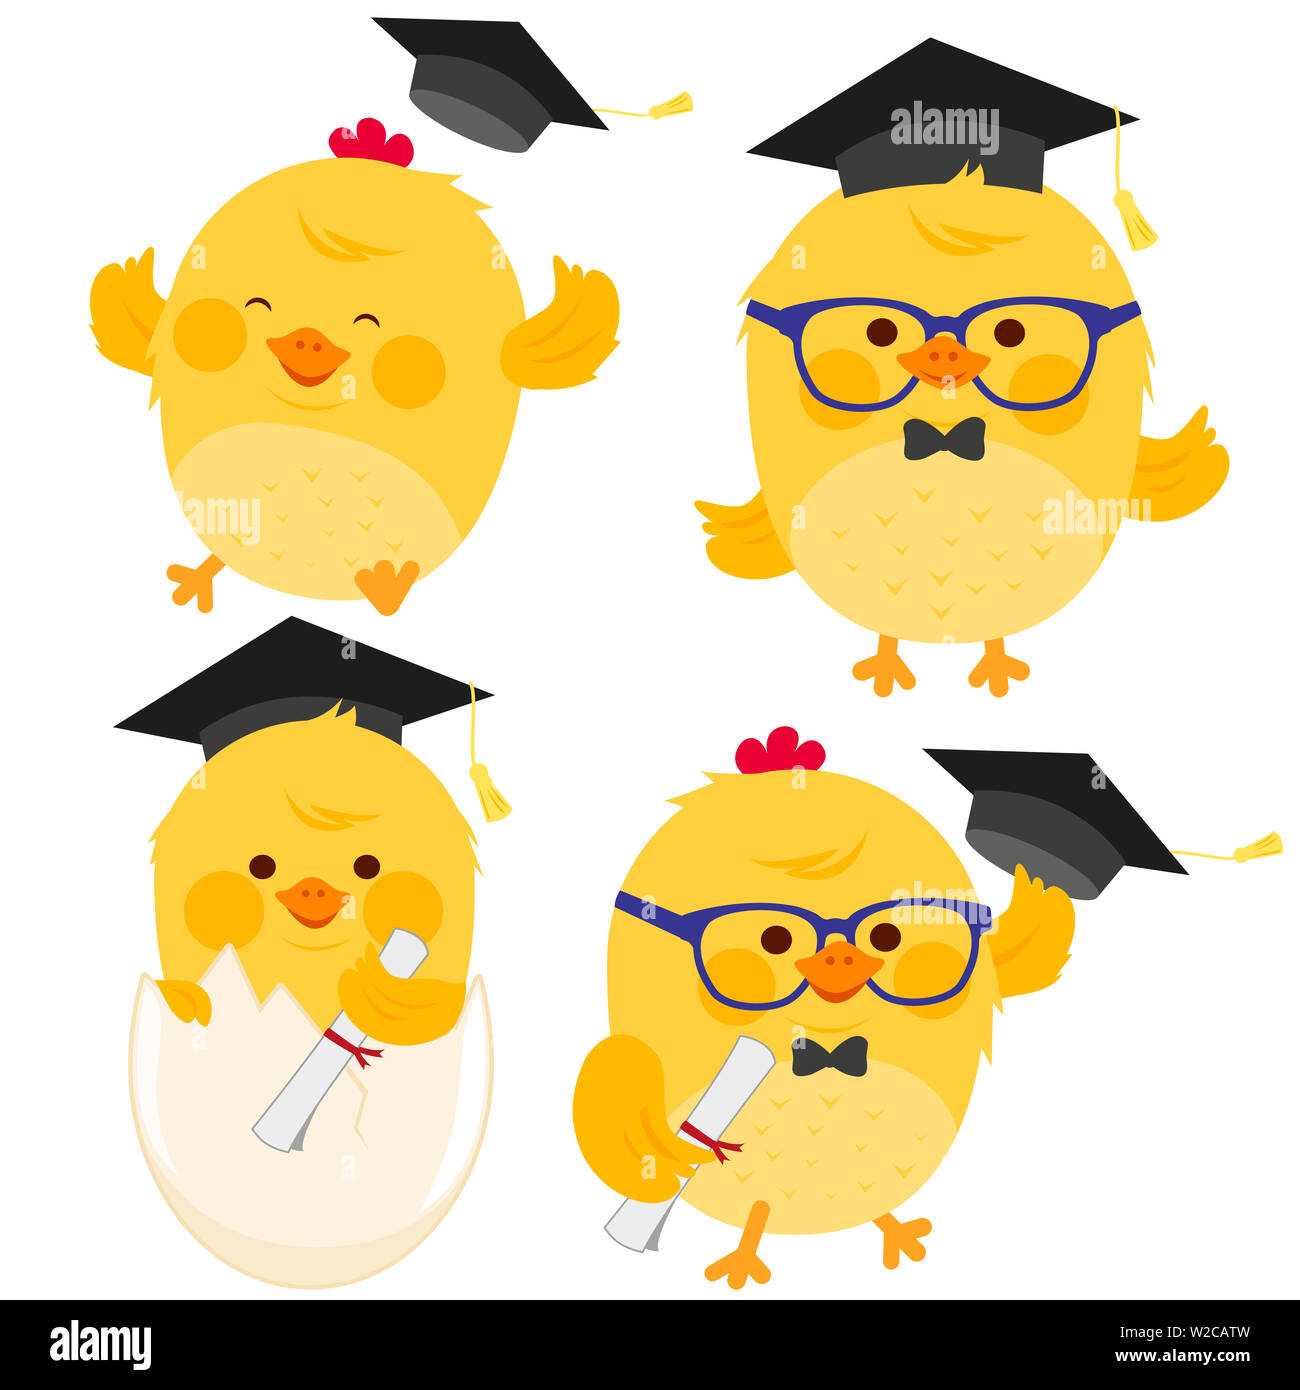 Illustration set of cute little chickens with graduation hats and diplomas. - Stock Image